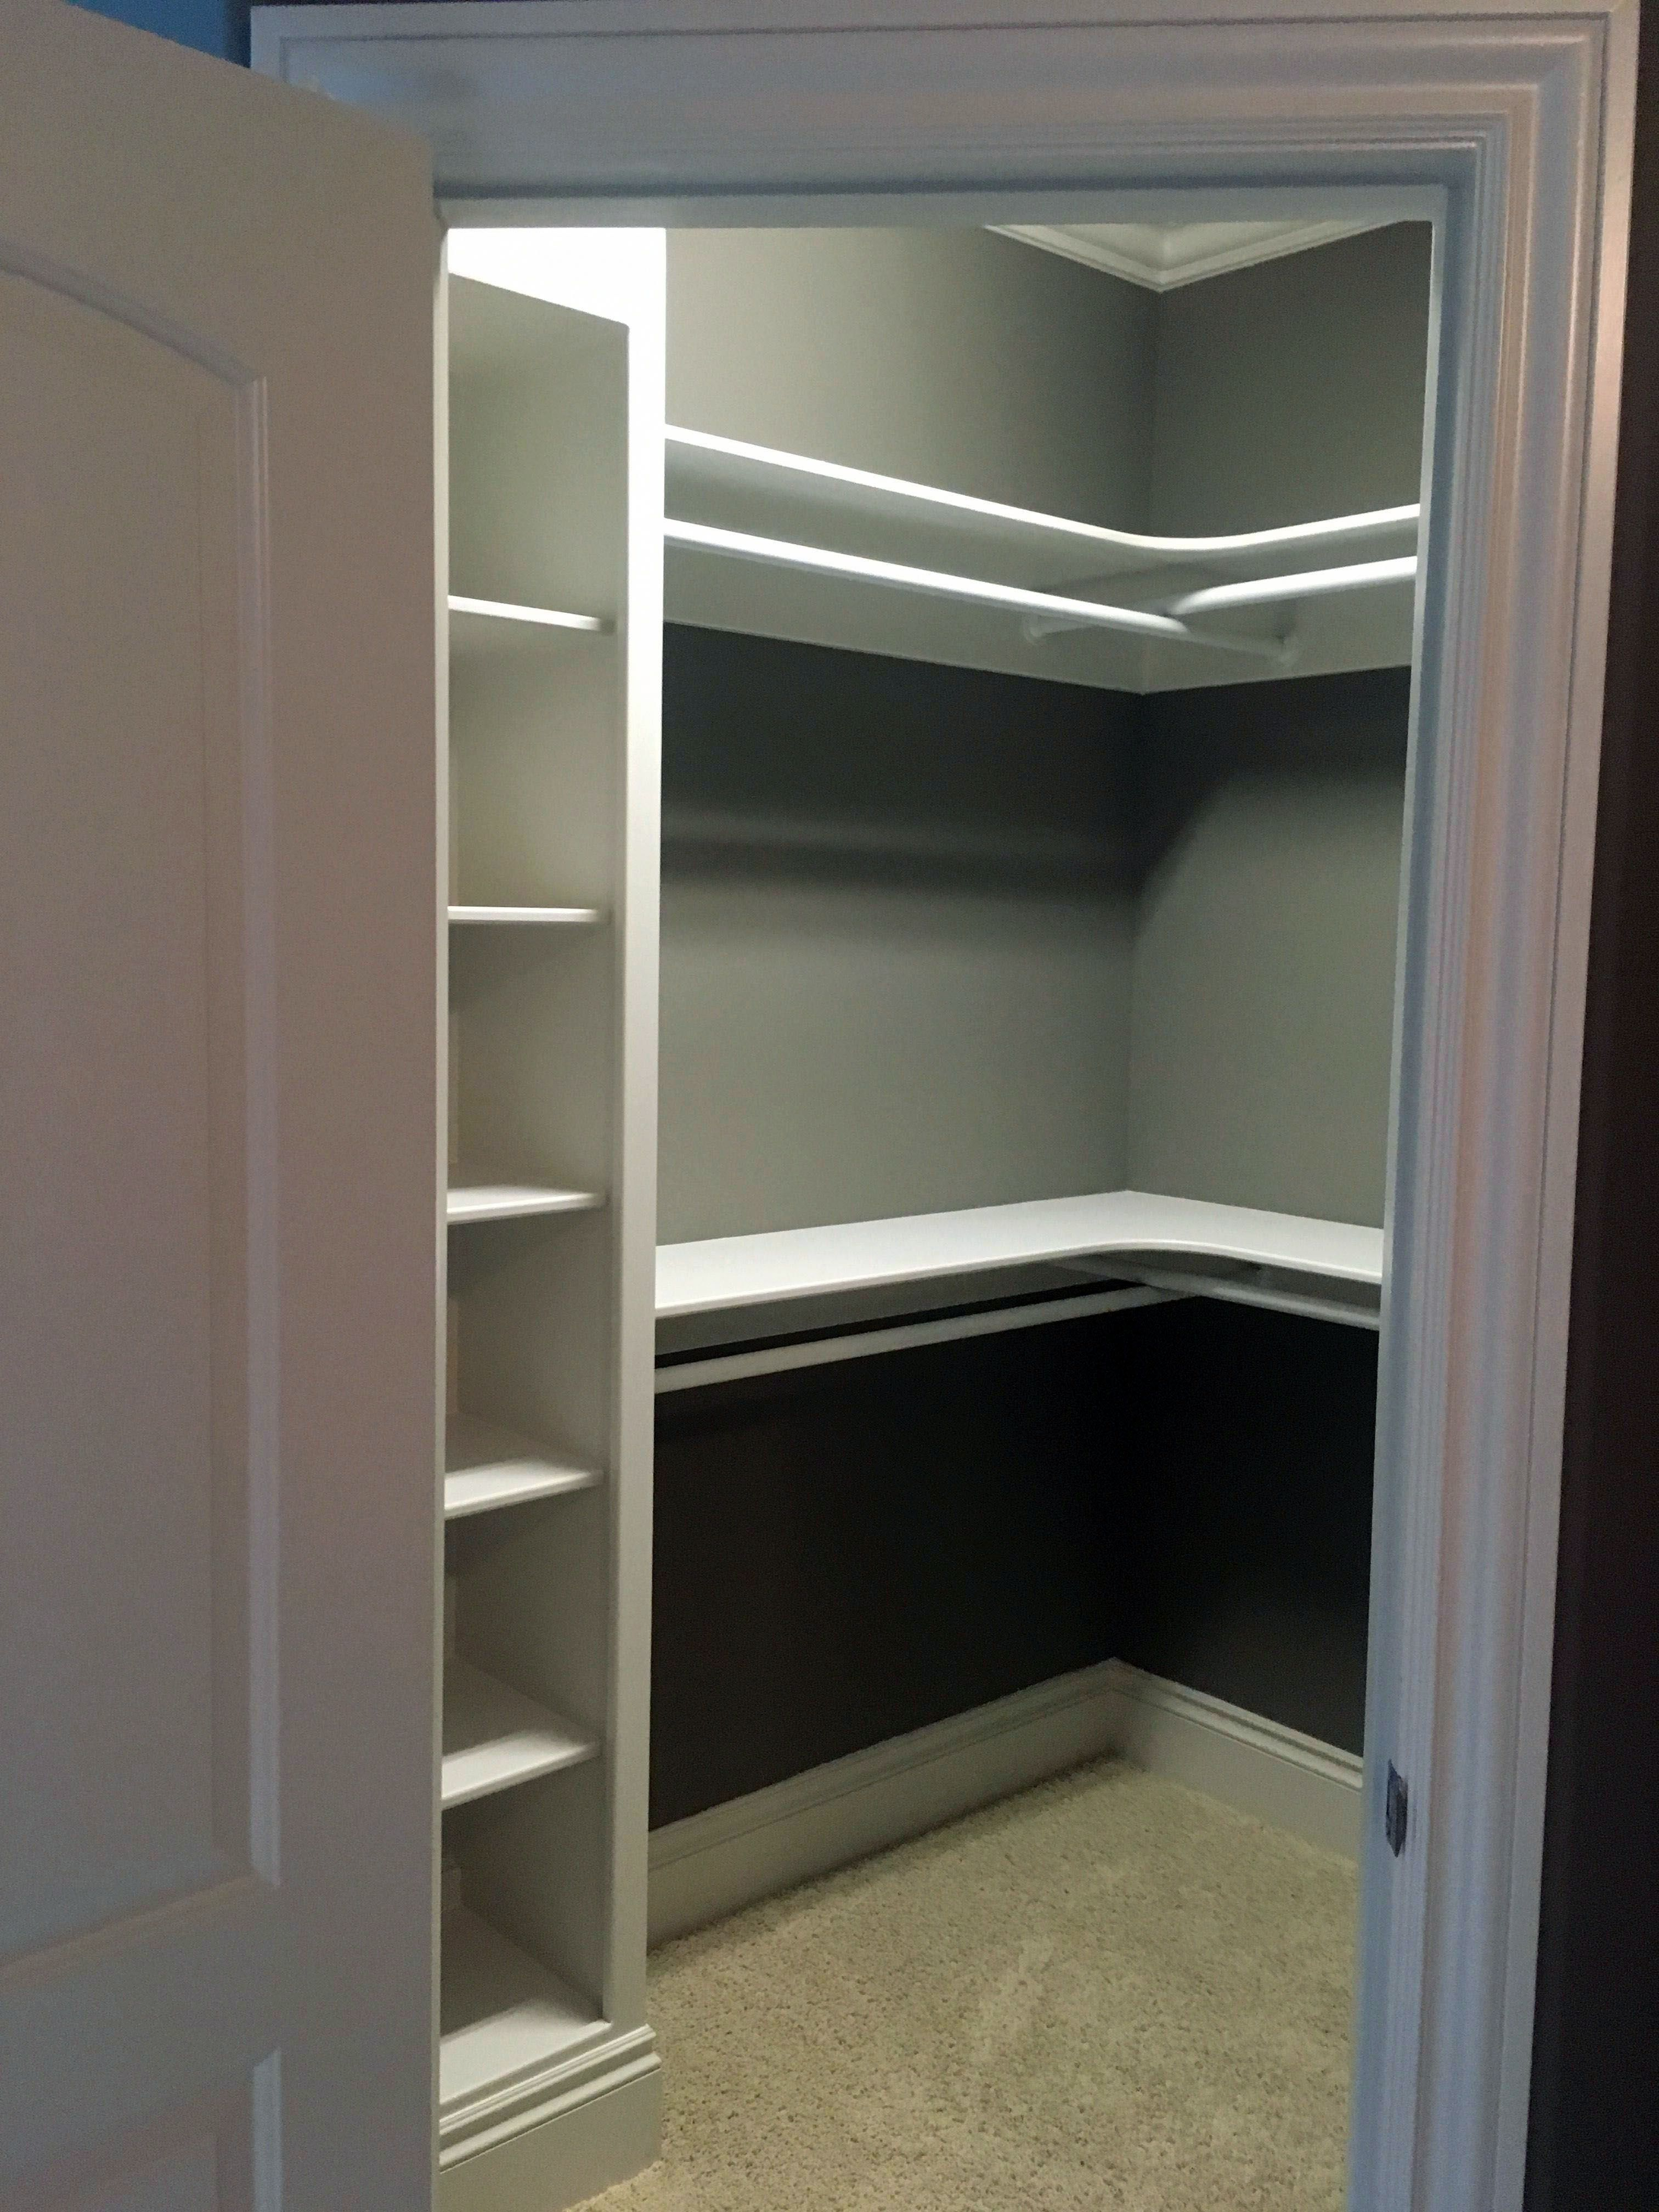 Great Bedroom Storage Ideas For Small Rooms Just On Home Design Ideas Site Closet Renovation Closet Remodel Closet Layout